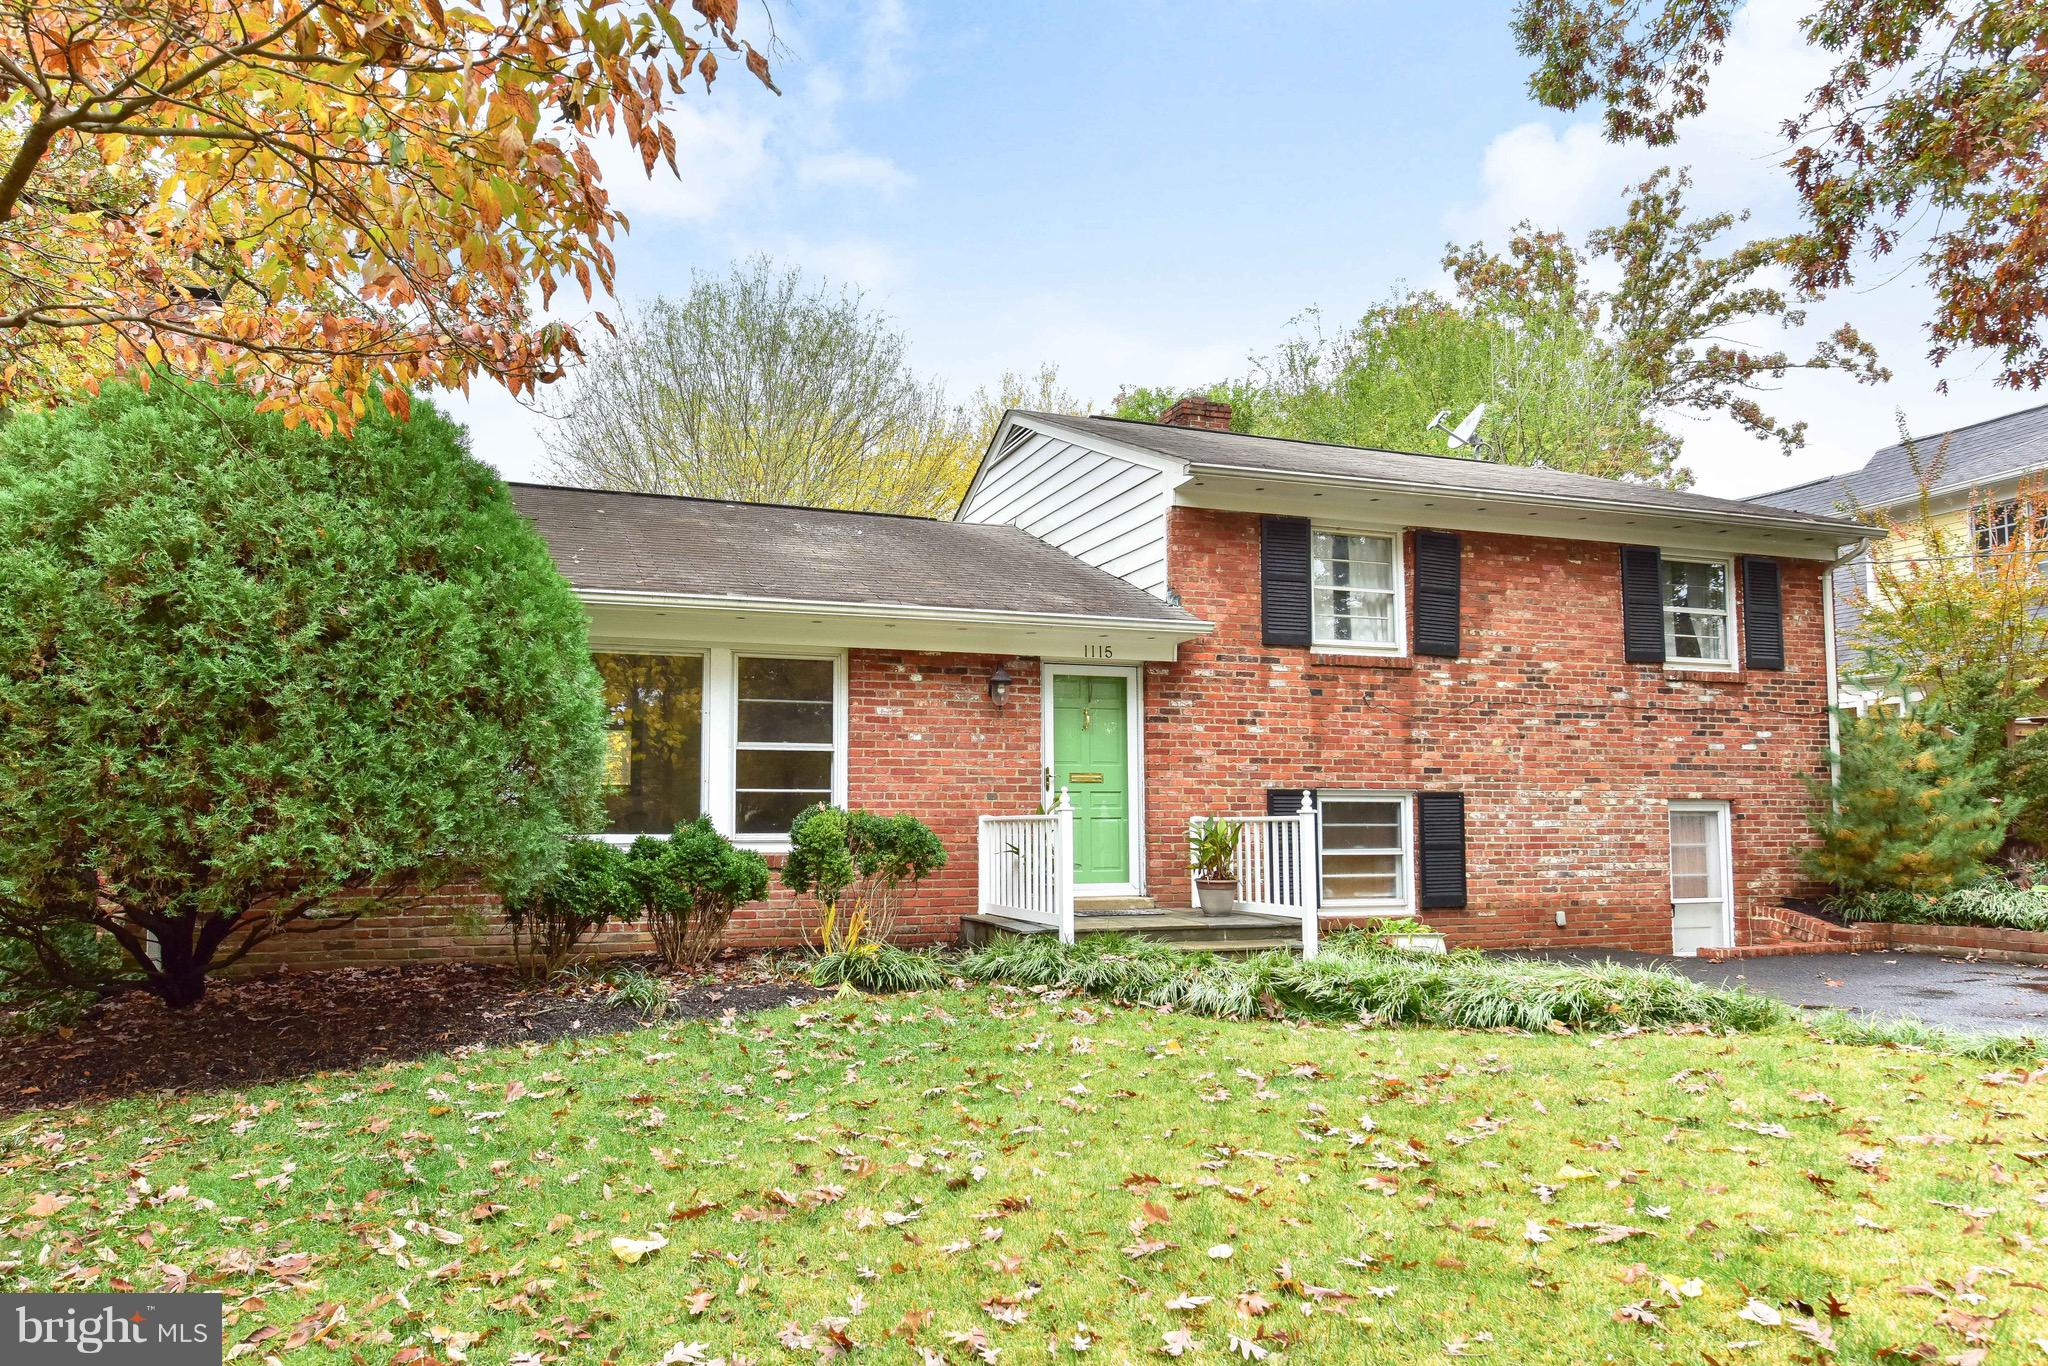 Sited at the quiet end of Key Drive near Chinquapin Park, this thoughtfully updated home features almost 3000 square feet and room for expansion on the level .44 acre lot.  The flexible floor plan includes two master suites with one on the main level; an updated kitchen overlooking the large family room and informal eating area; formal living room that could also function as a dining room, and a cozy finished lower level with walkout to the front.  The three season sun room overlooks the lush private backyard with large patio.  Other highlights include: hardwood floors, granite counters, recessed lighting, breakfast bar, skylights, two fireplaces, built-ins, storage room, and more!  Conveniently located just minutes from Old Town, Del Ray, shopping, dining, and transit, your new home awaits!